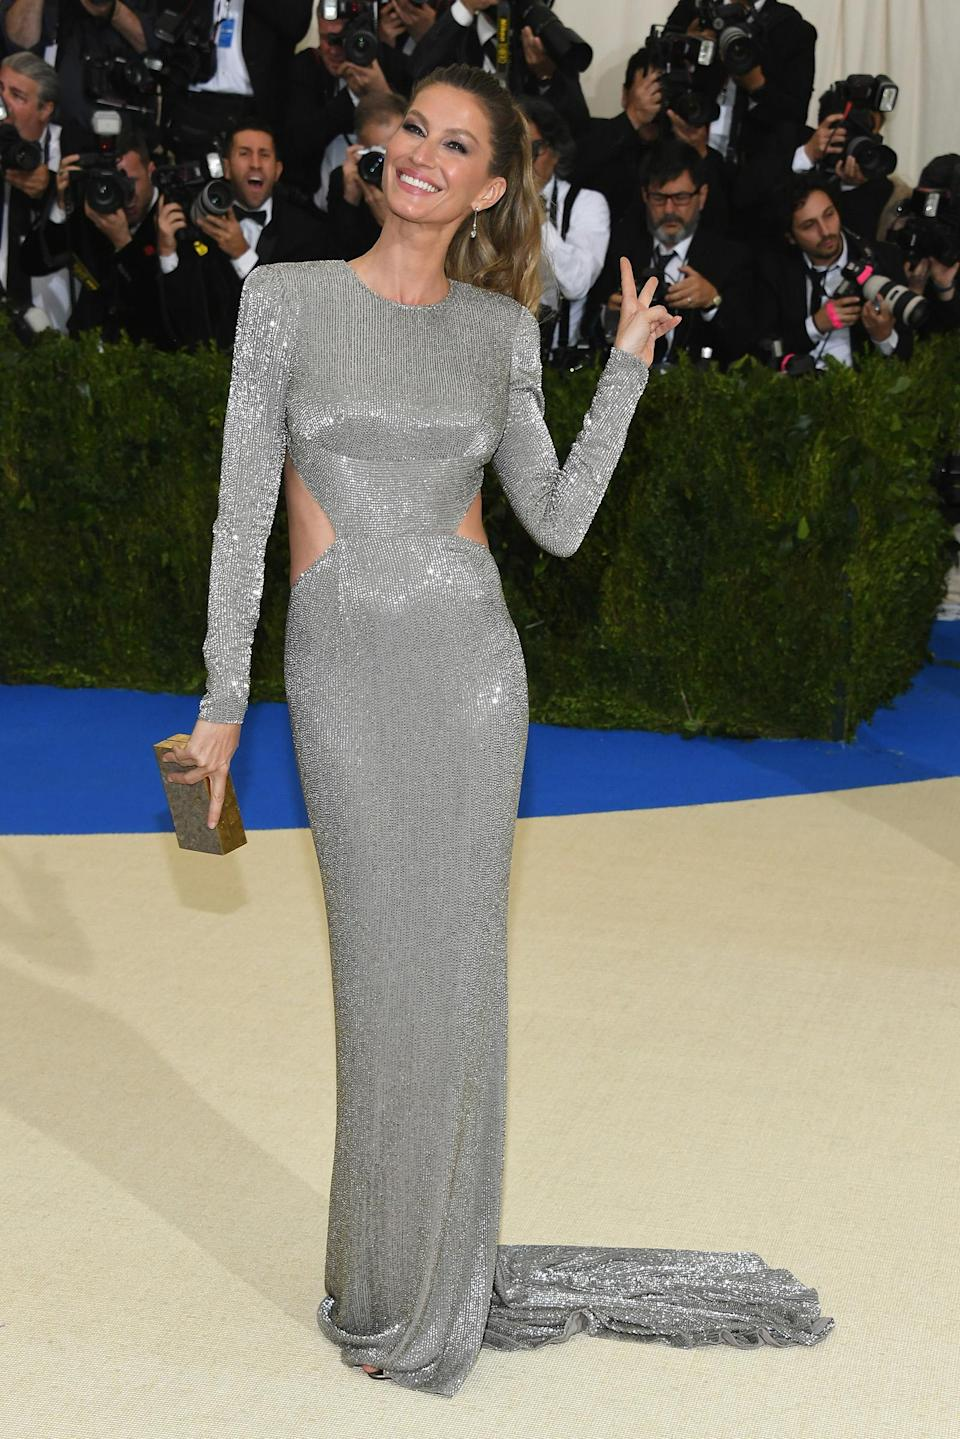 <p>The model can even be spotted at glamorous events, such as this year's Met Gala, getting silly with her poses. (Photo: Getty Images) </p>